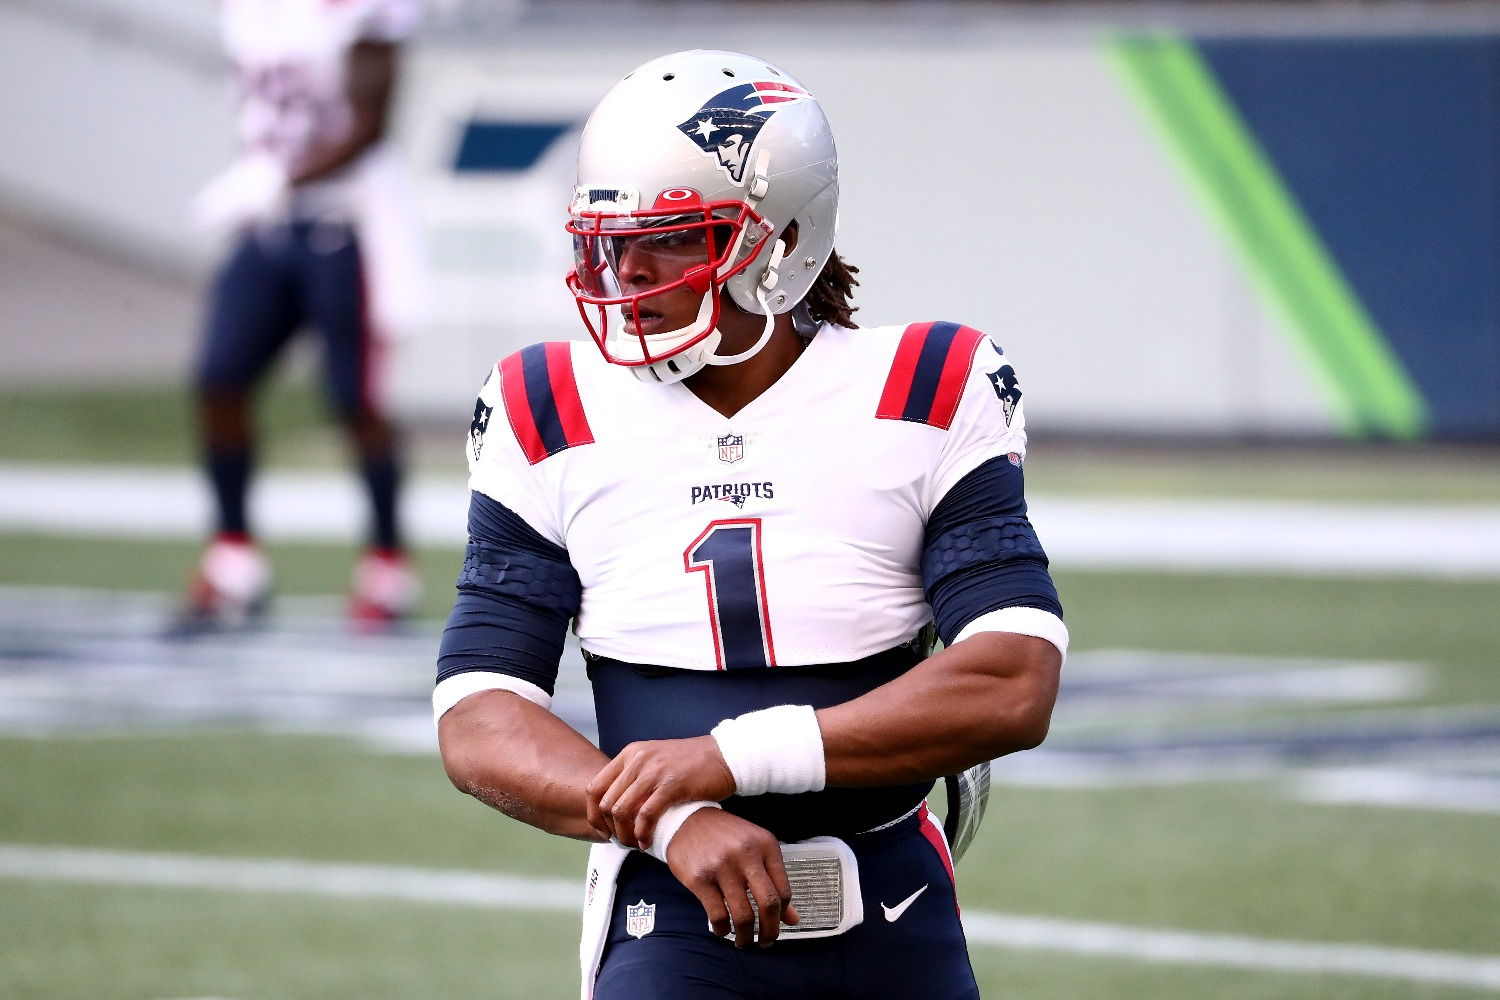 Cam Newton just made NFL executives' worst nightmare come true, as the Patriots QB showed he's far from finished and that NFL teams made a massive mistake by passing him over in free agency.